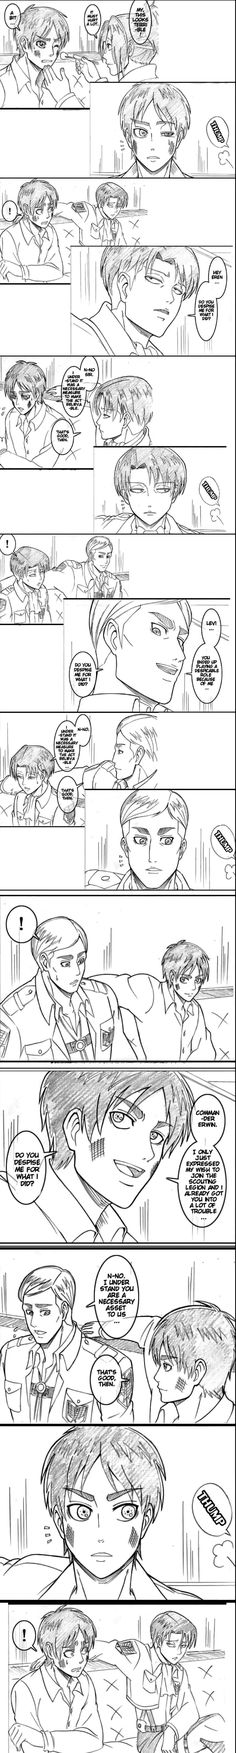 """Just wtf is this, Eren Levi and Erwin after the kick court scene sitting on the couch and switch roles quoting """"do you despise me?"""""""